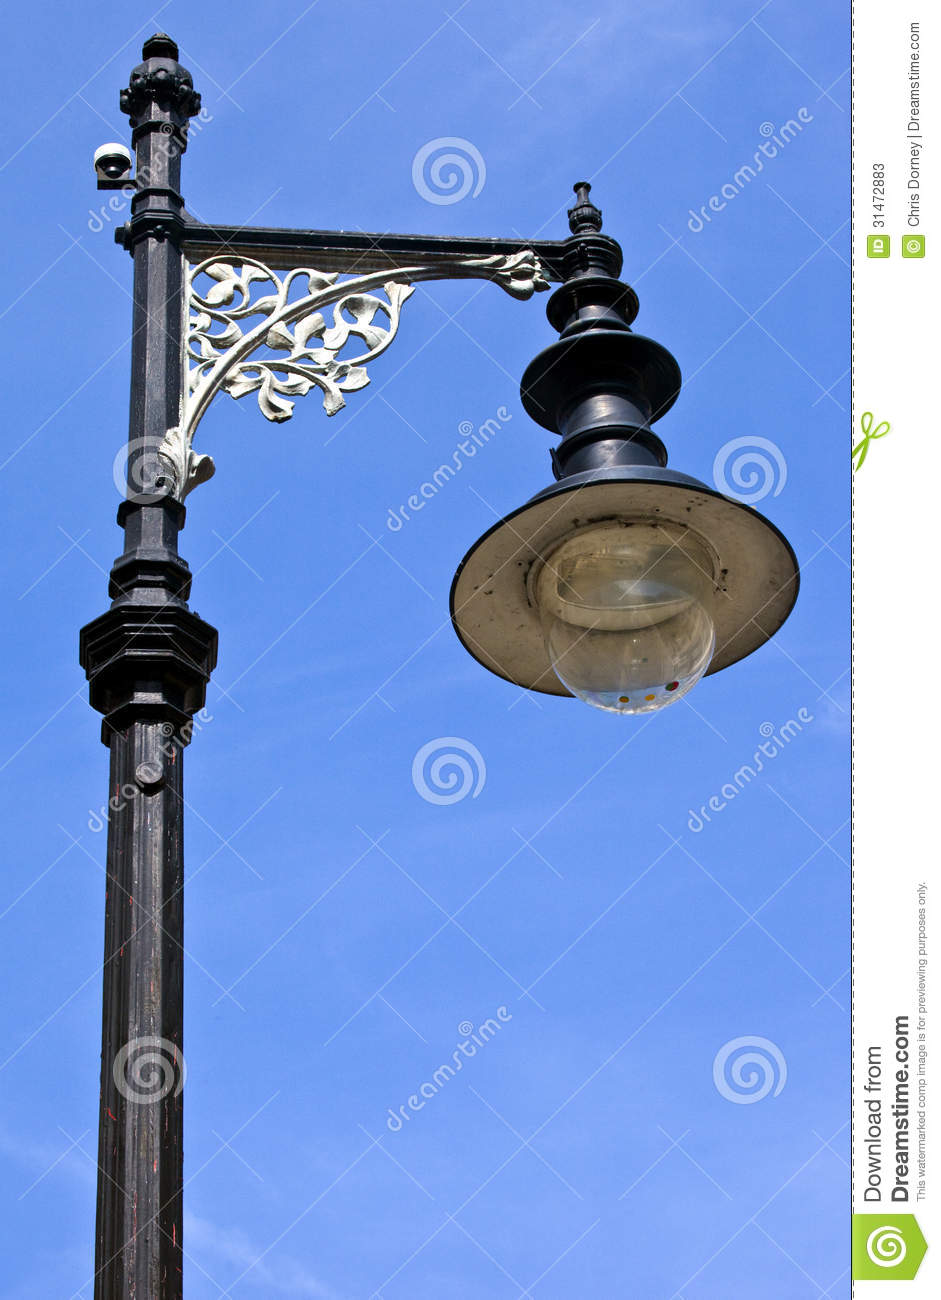 Vintage london lamp post stock image image of street 31472883 vintage london lamp post aloadofball Image collections